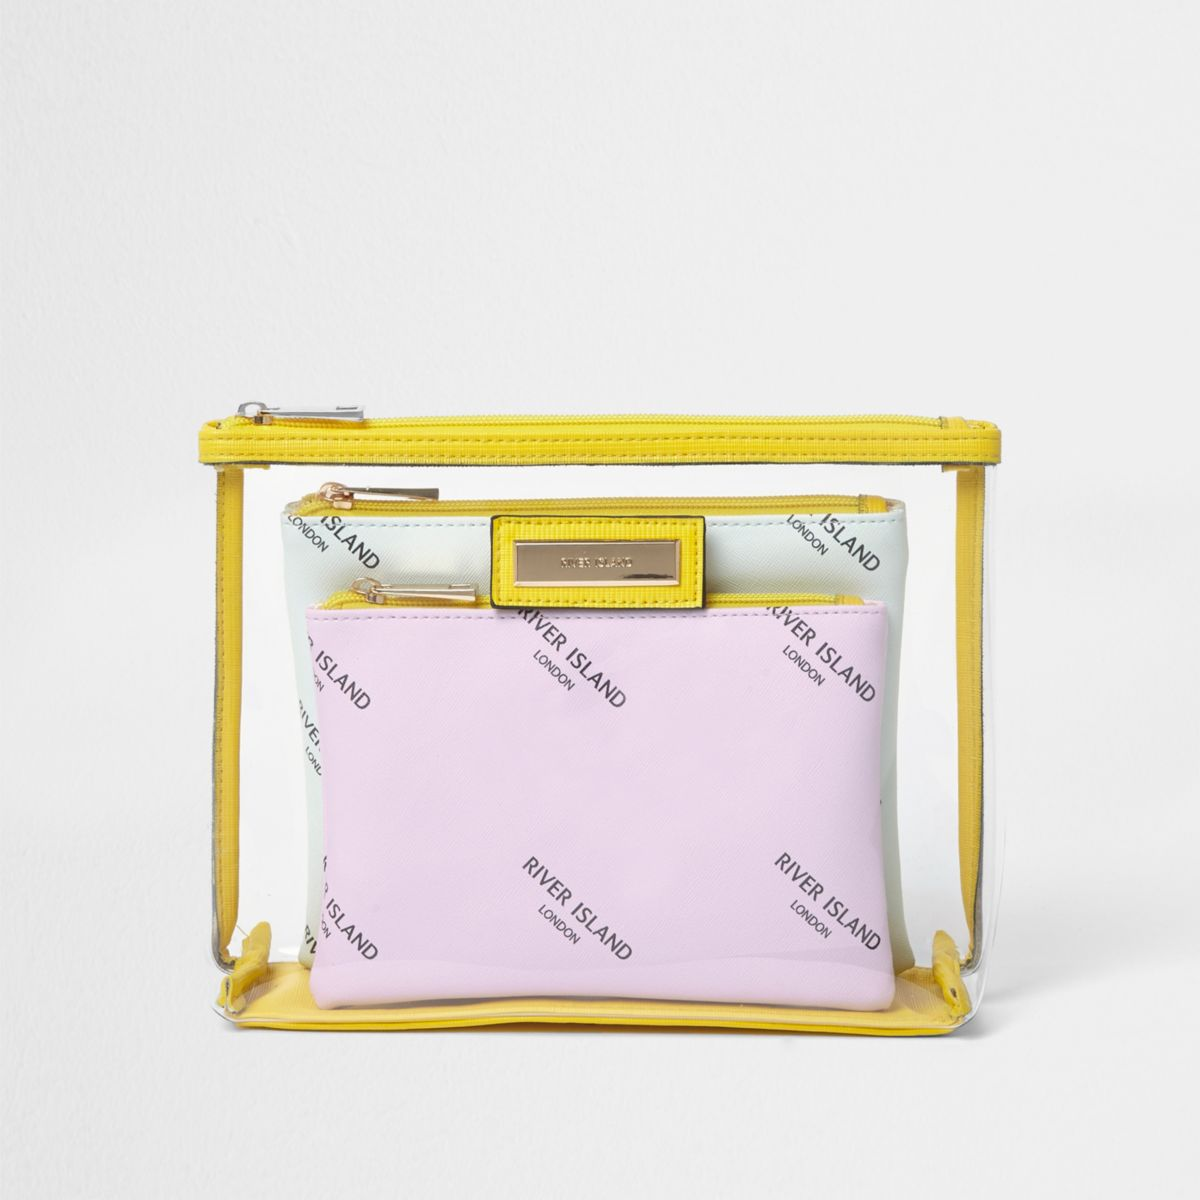 Yellow clear plastic branded make-up bag set